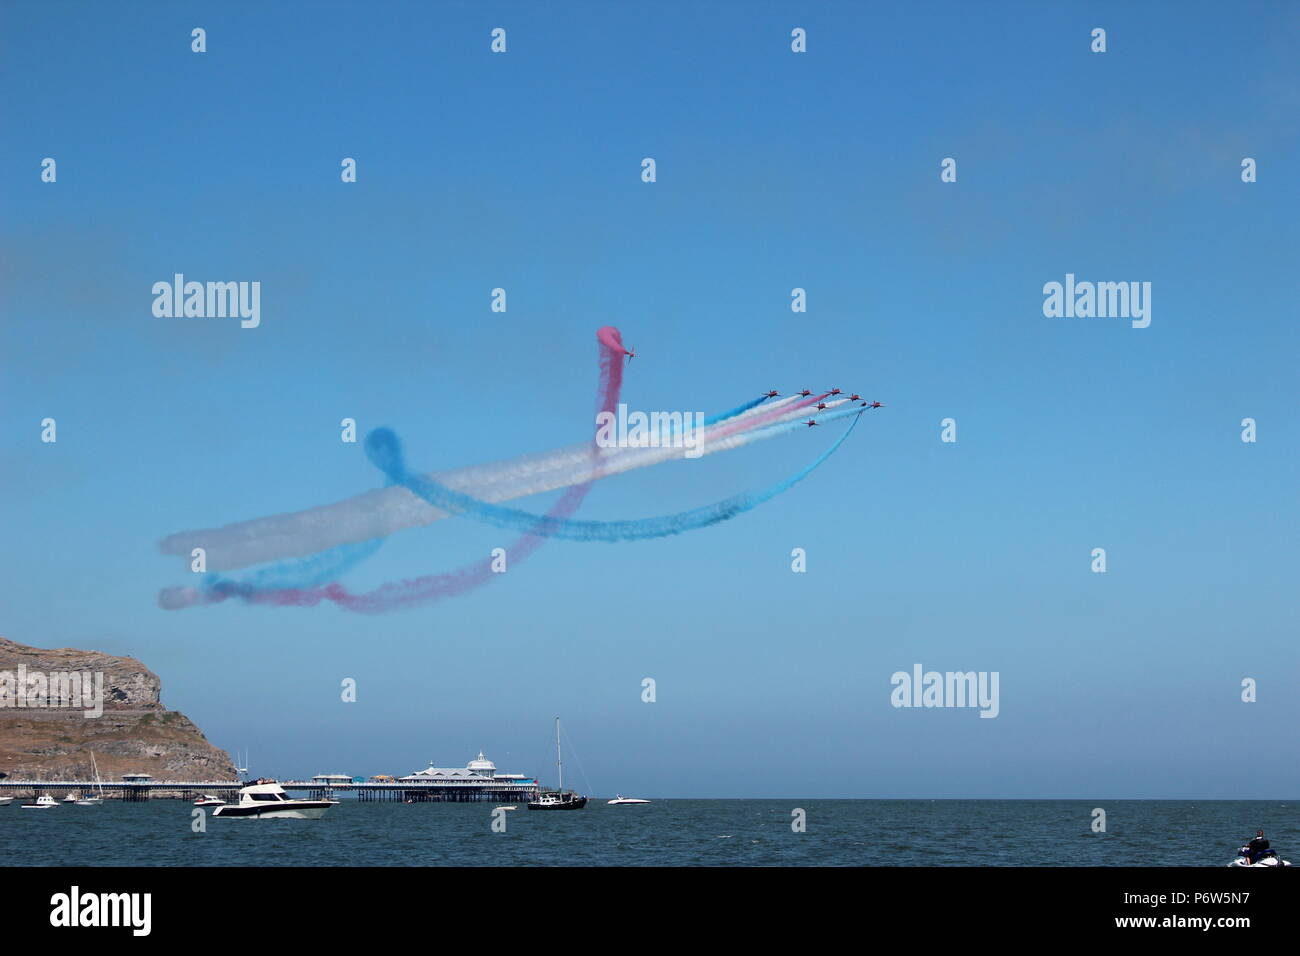 Armed Forces Day. Llandudno. The Red Arrows performing aerobatic - Stock Image